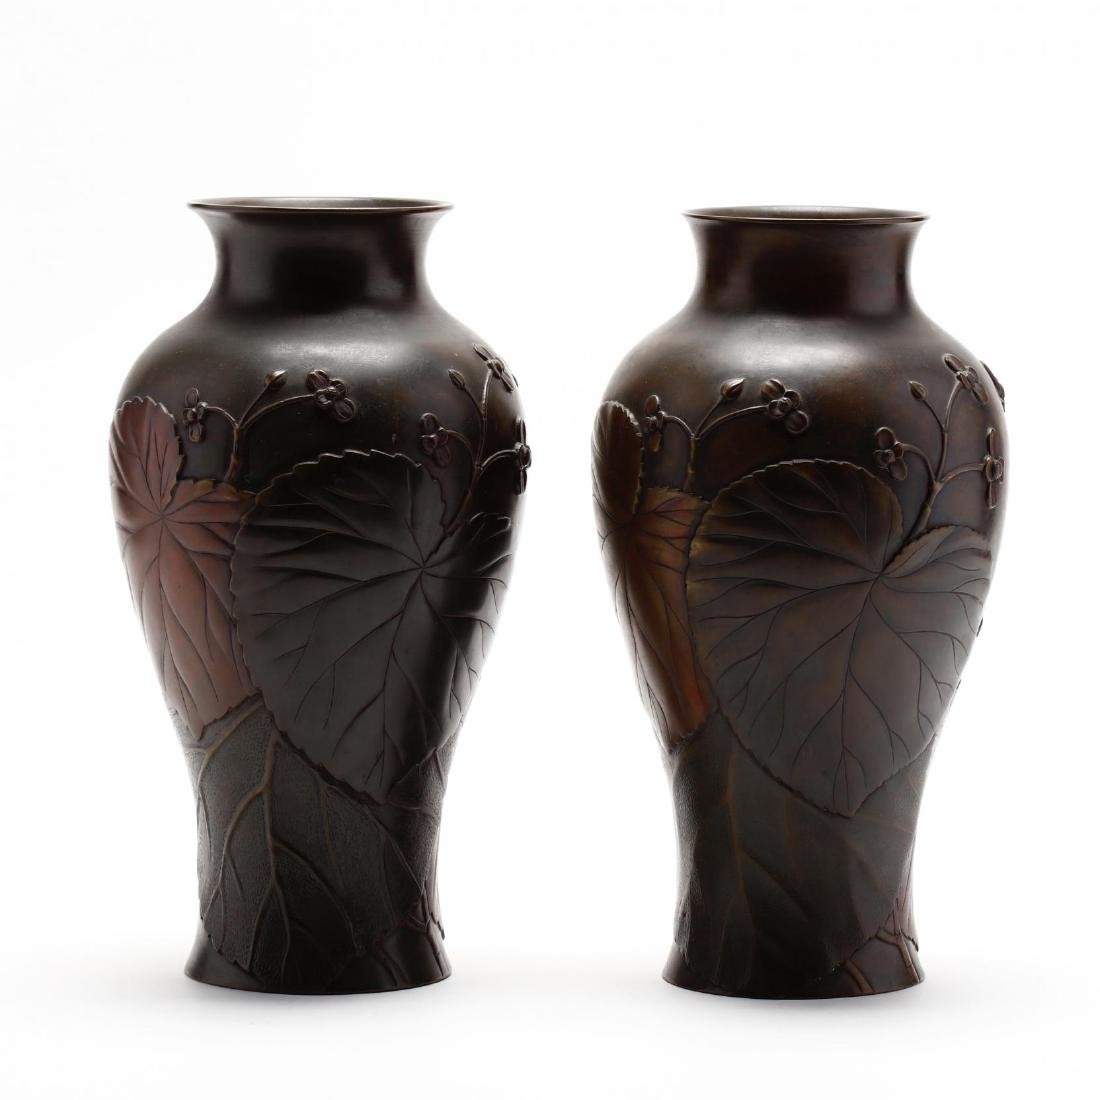 A Pair of Japanese Bronze Vases by Yoshinobu